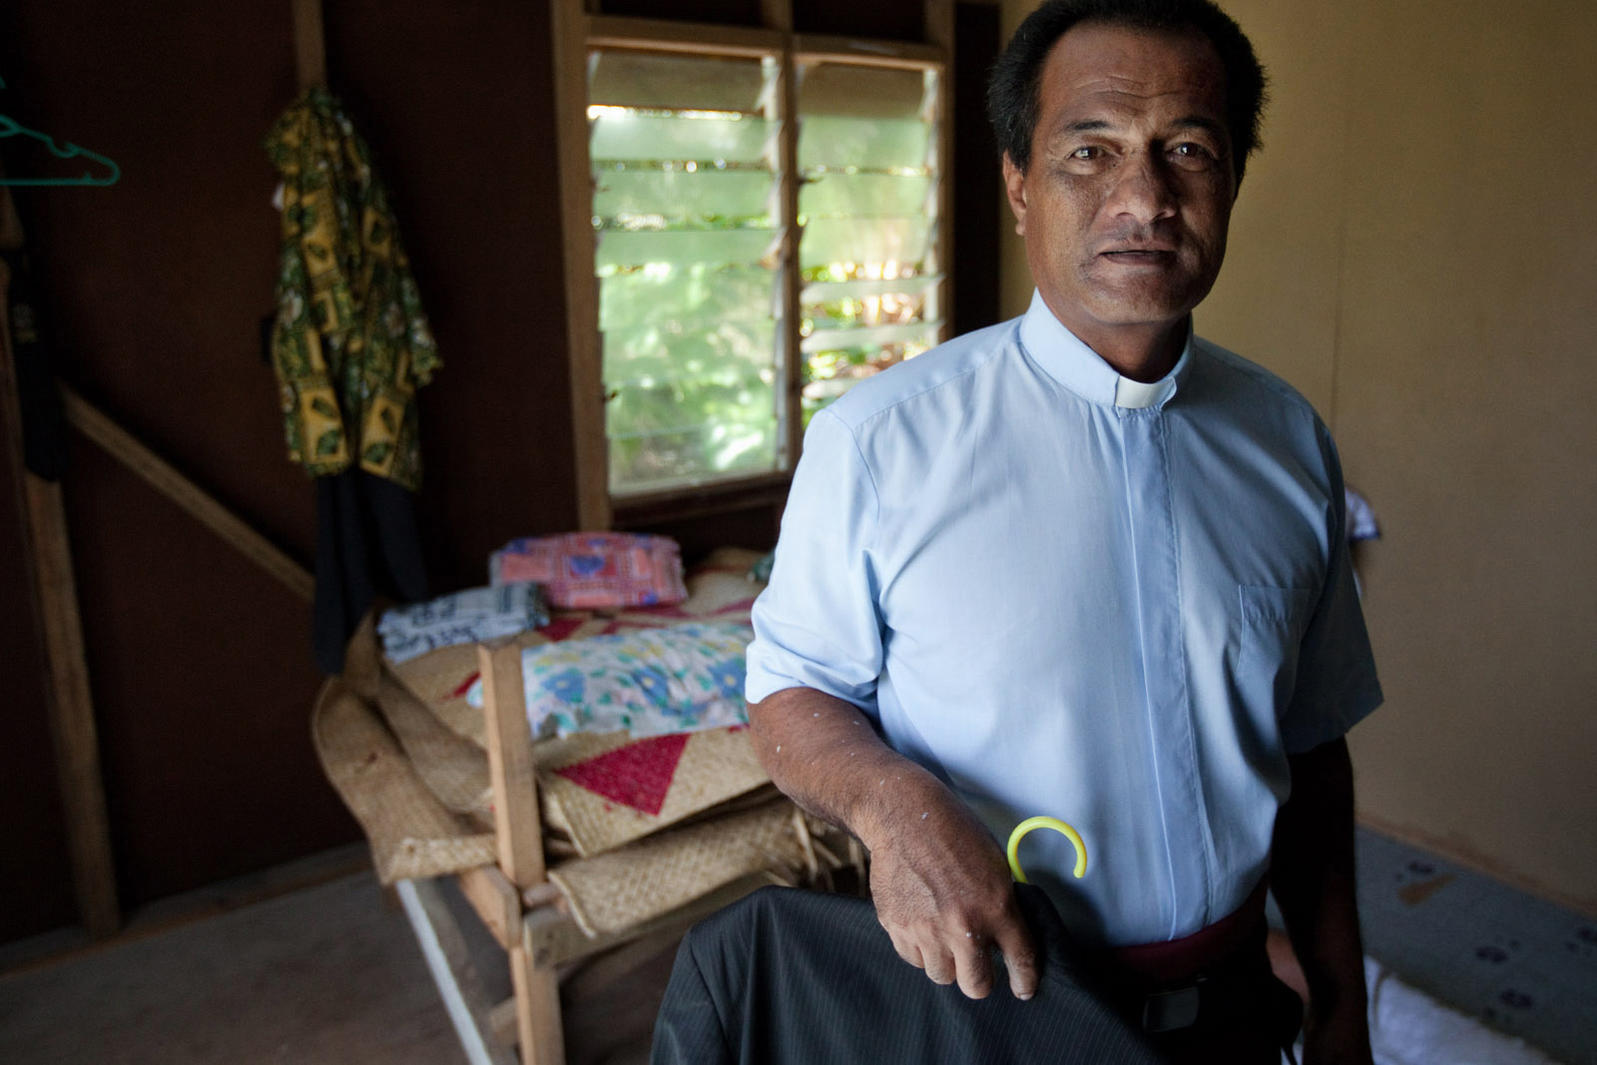 Tafue Lusama sees this year's U.N. climate conference as the last hope for saving his home country and other Pacific Island nations. Rodney Dekker